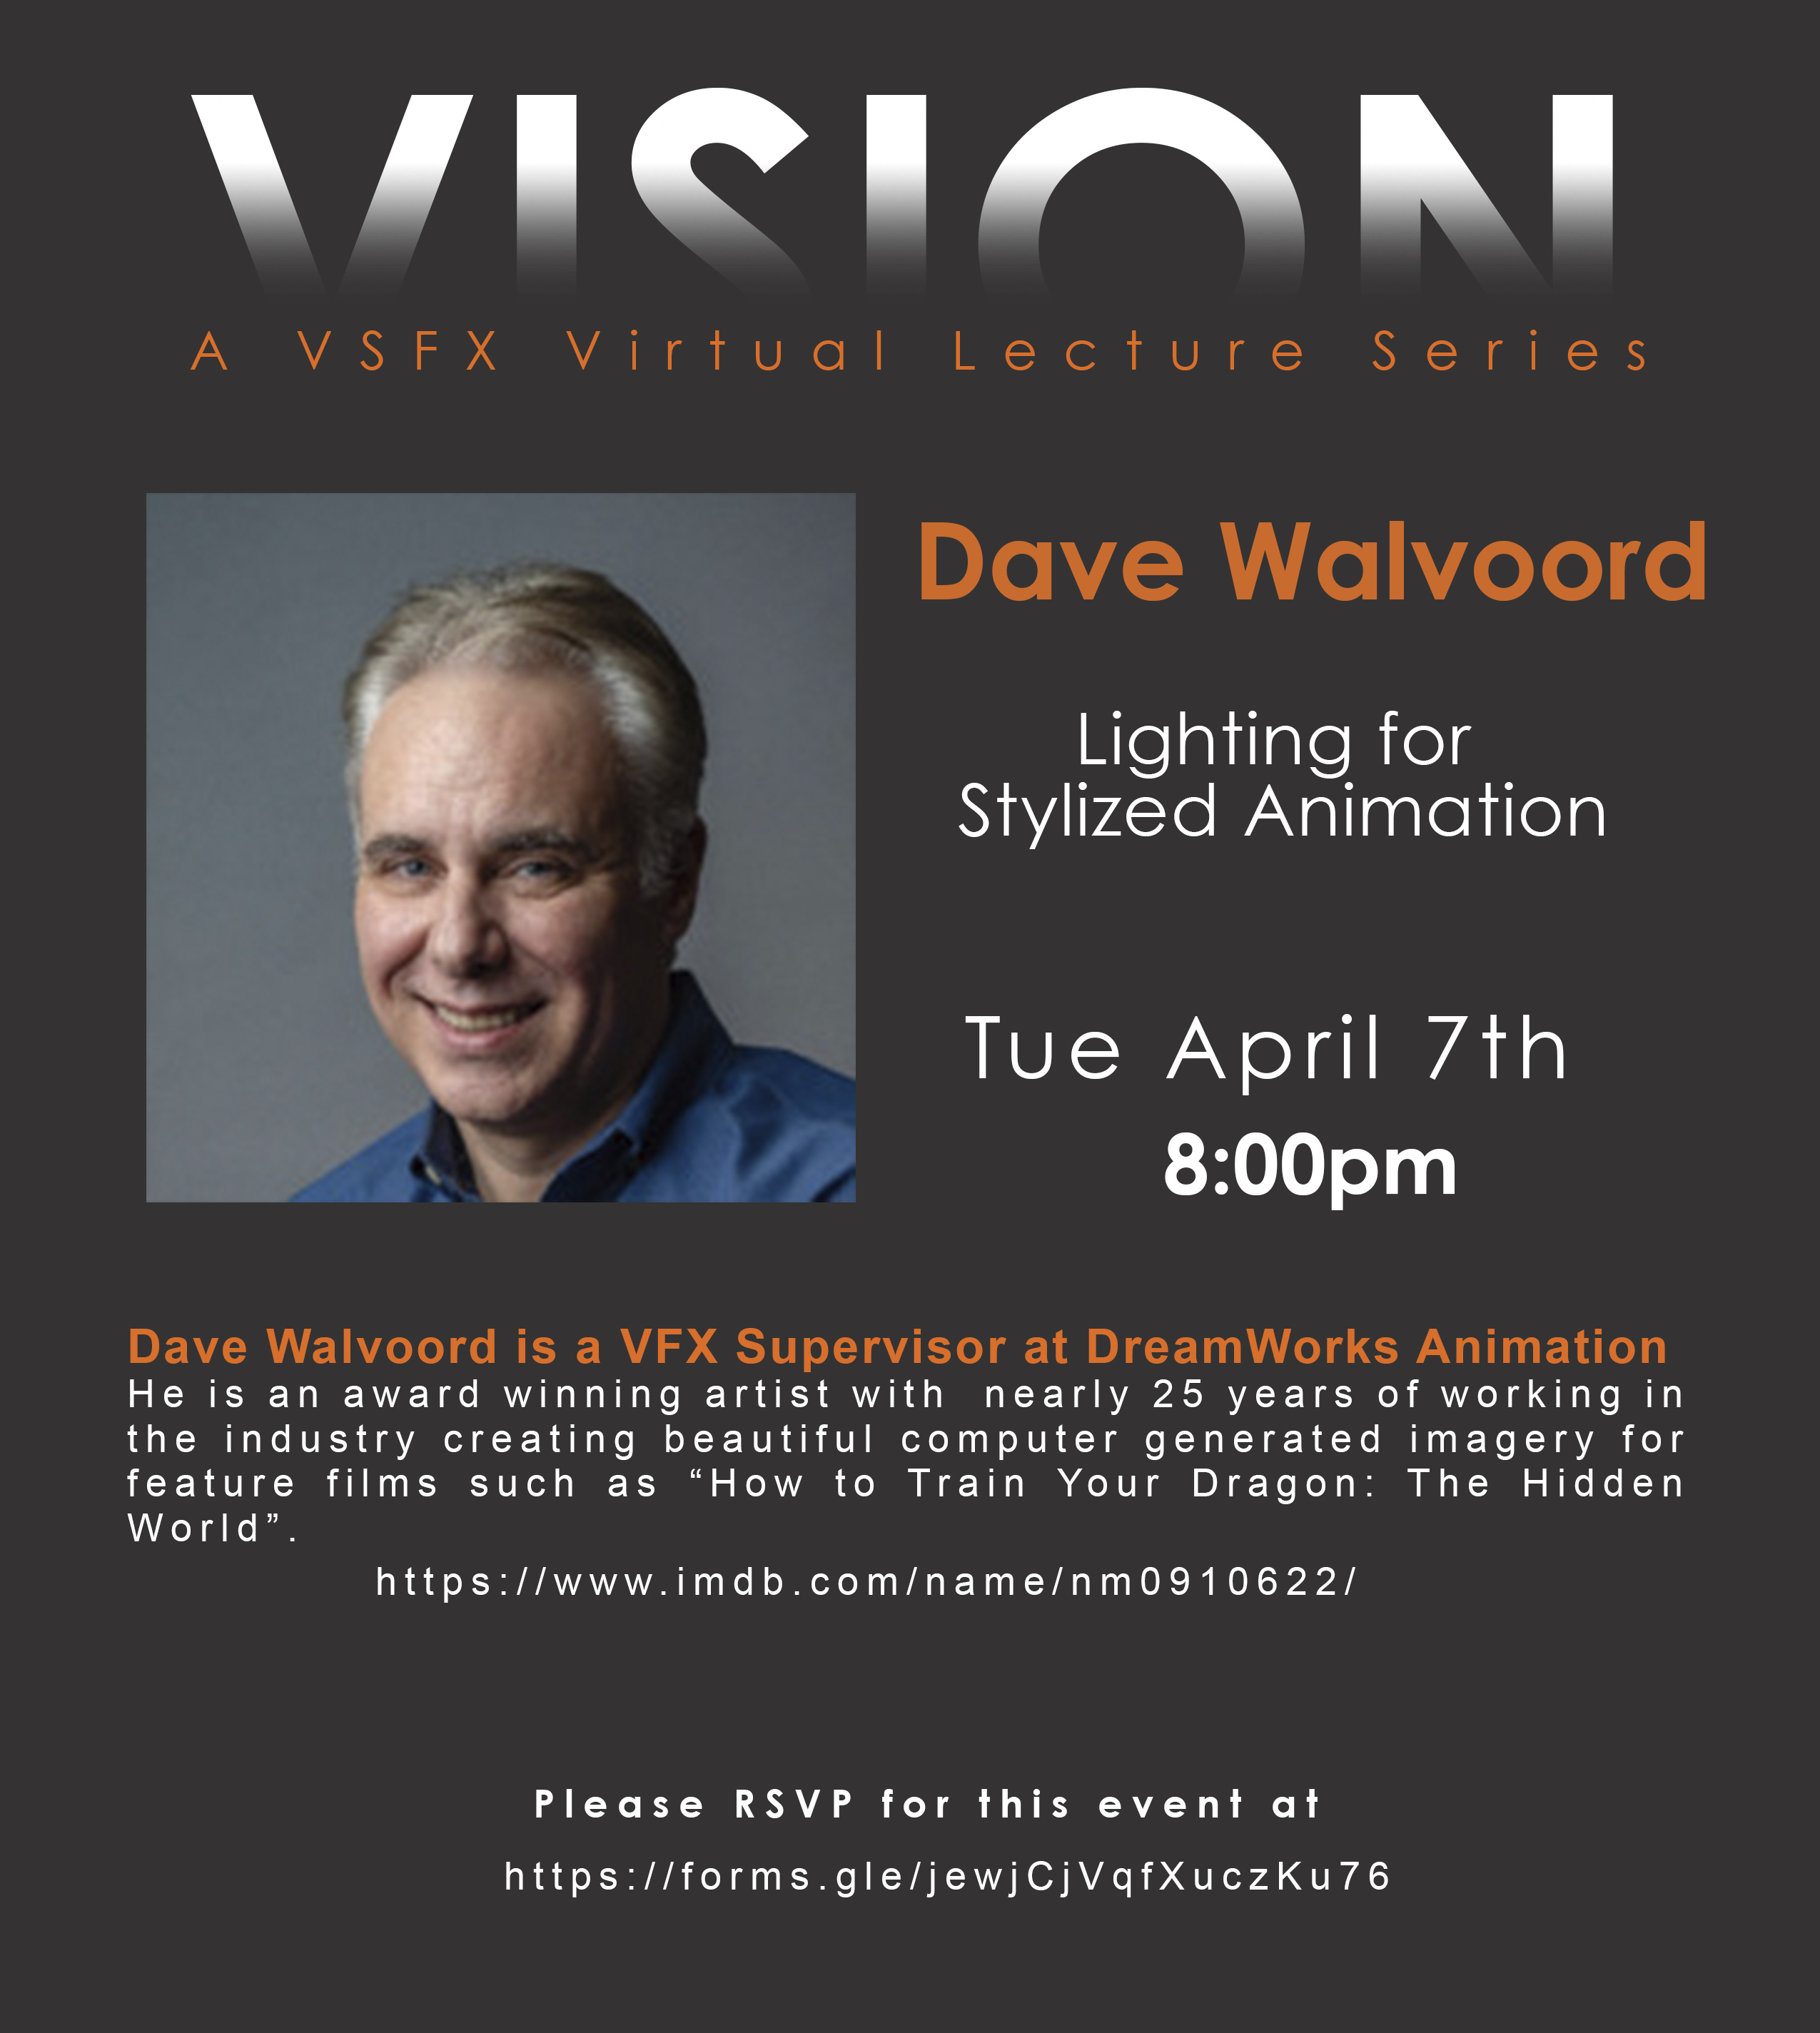 VSFX Virtual Lecture Series Presents – Dave Walvoord